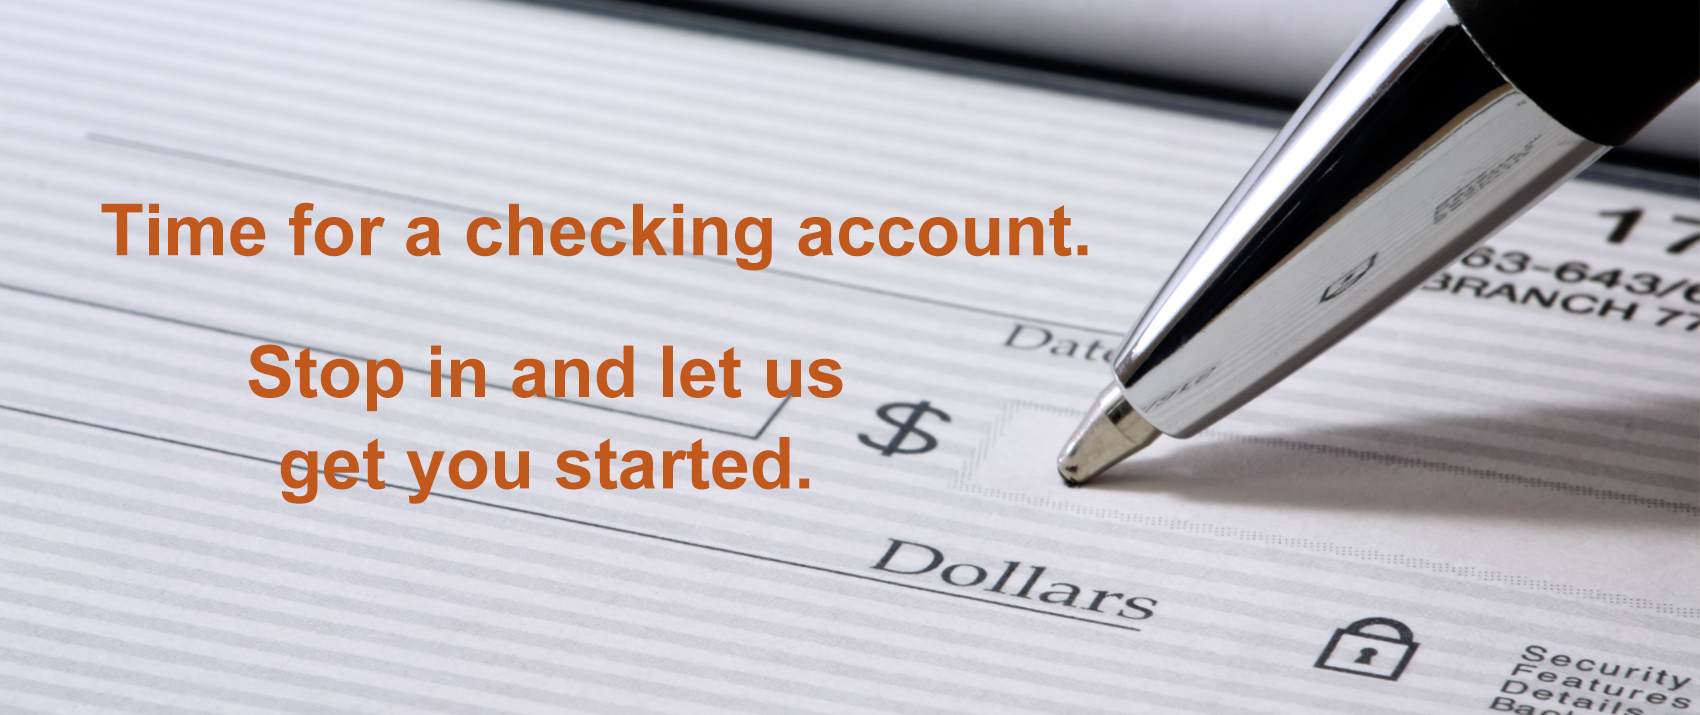 Time for a checking account. Stop in and let us get you started.